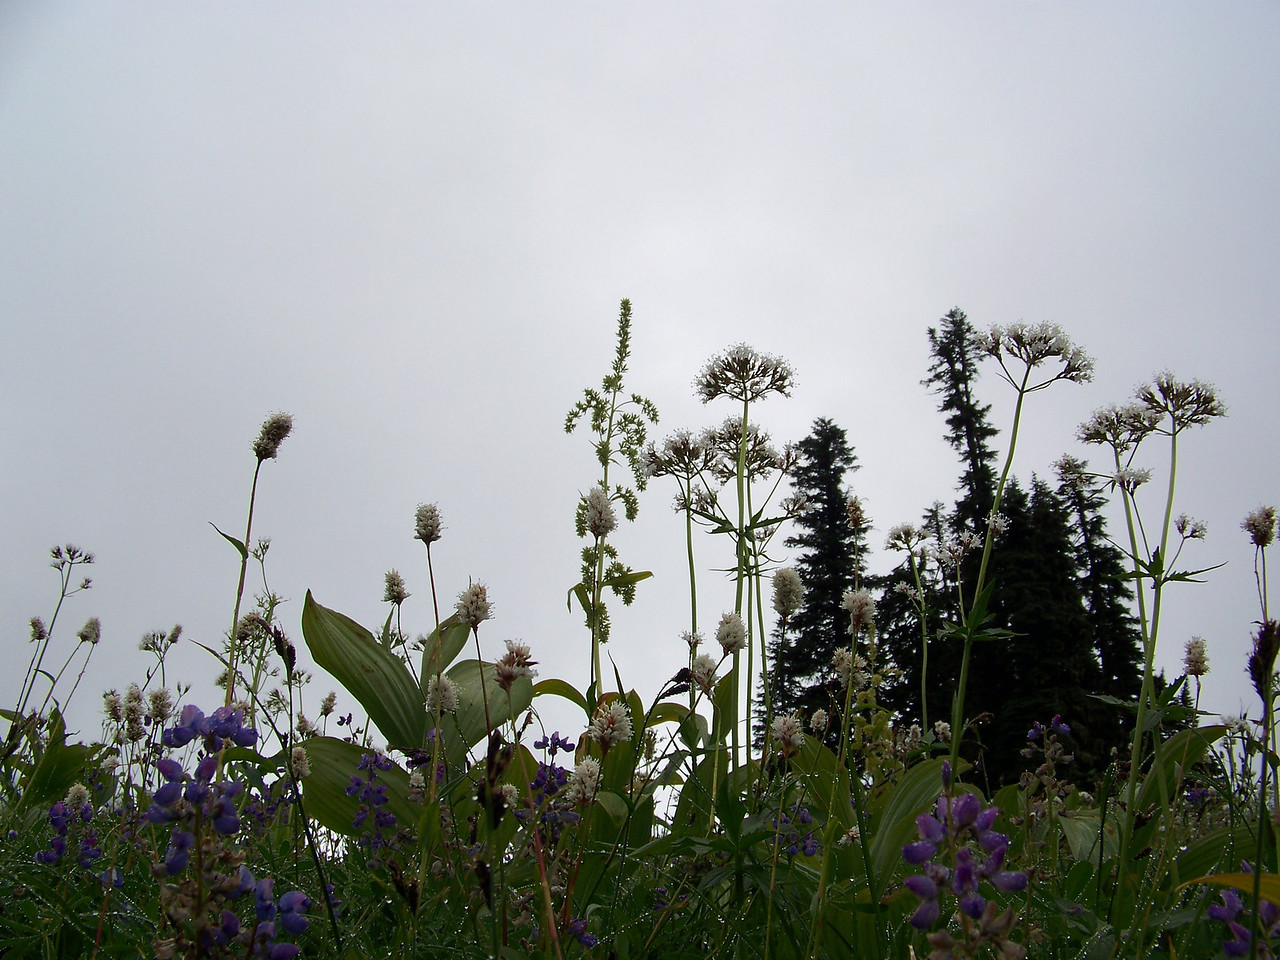 I put the camera down low to capture some of the taller plants against the gray, cloudy sky.<br /> [Mount Rainier - wildflowers near Tipsoo Lake]